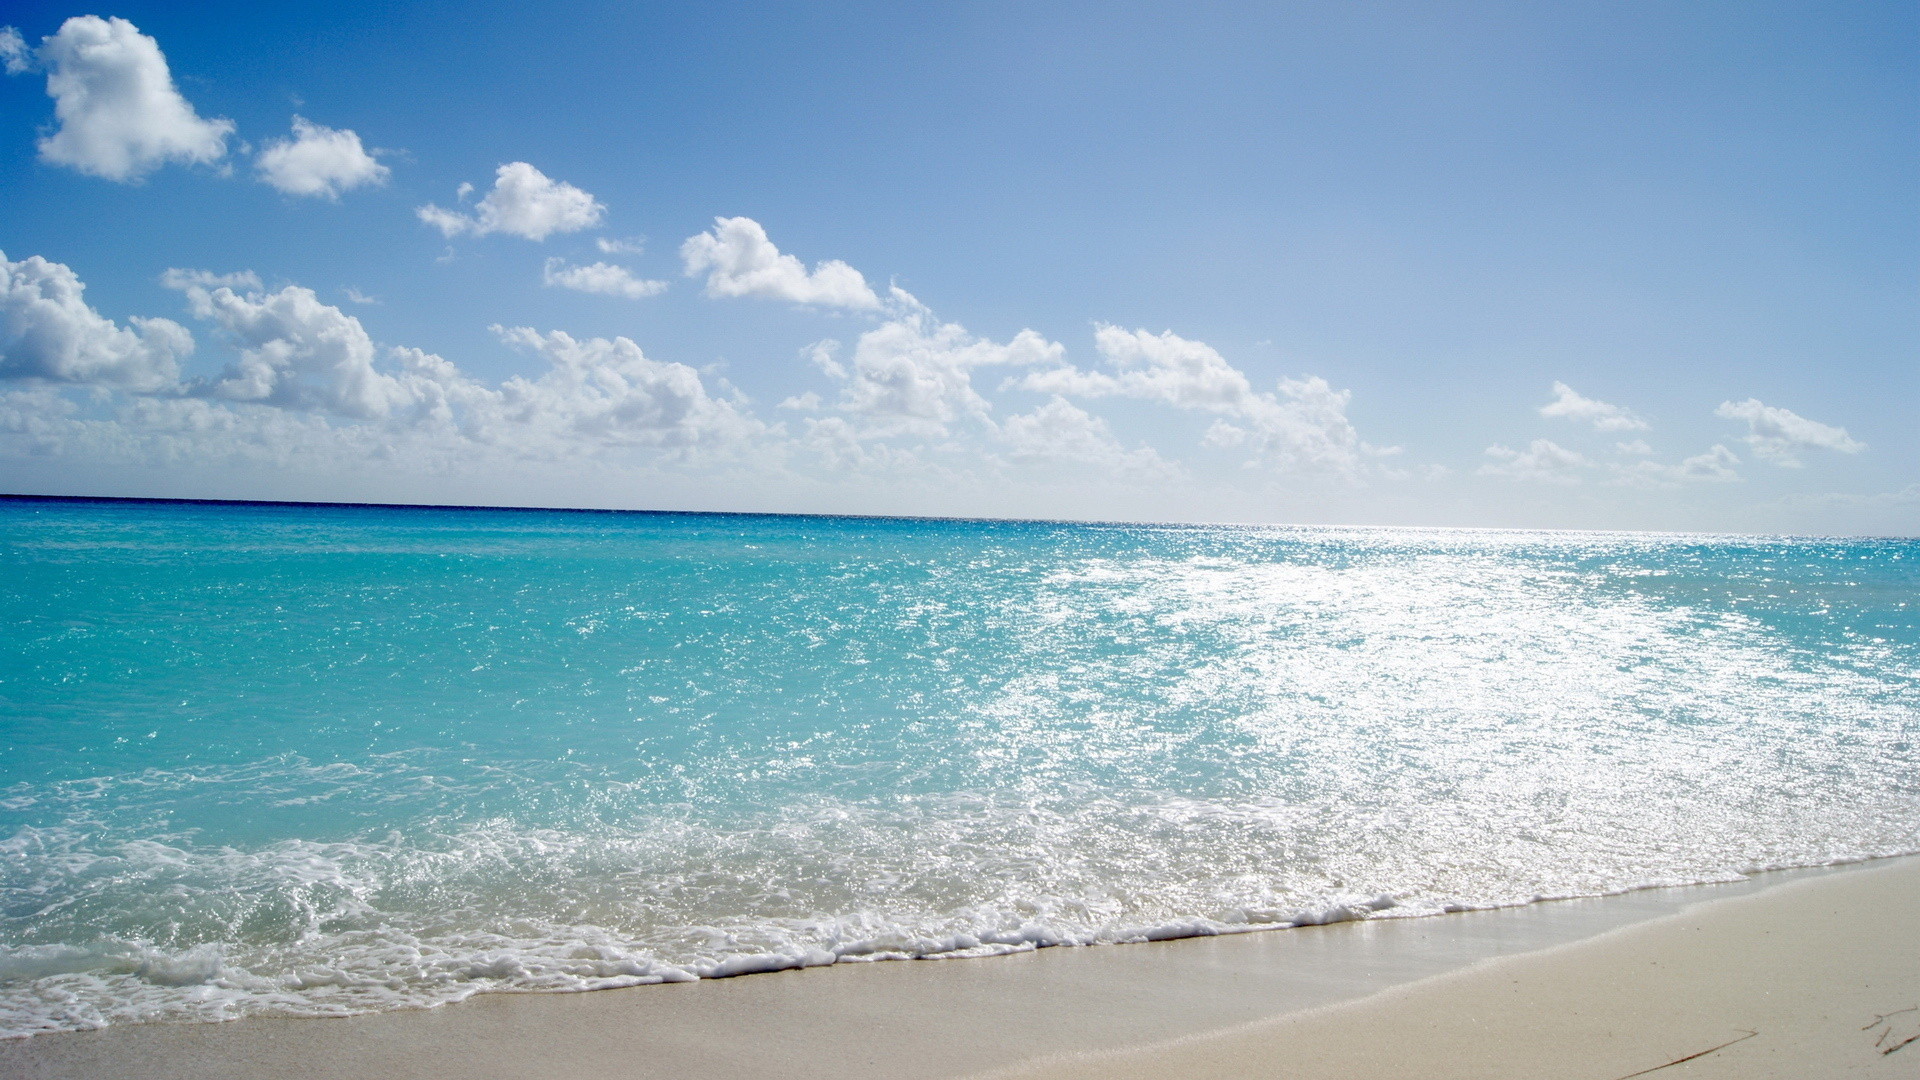 21498 download wallpaper Landscape, Sea, Clouds, Beach, Sand screensavers and pictures for free